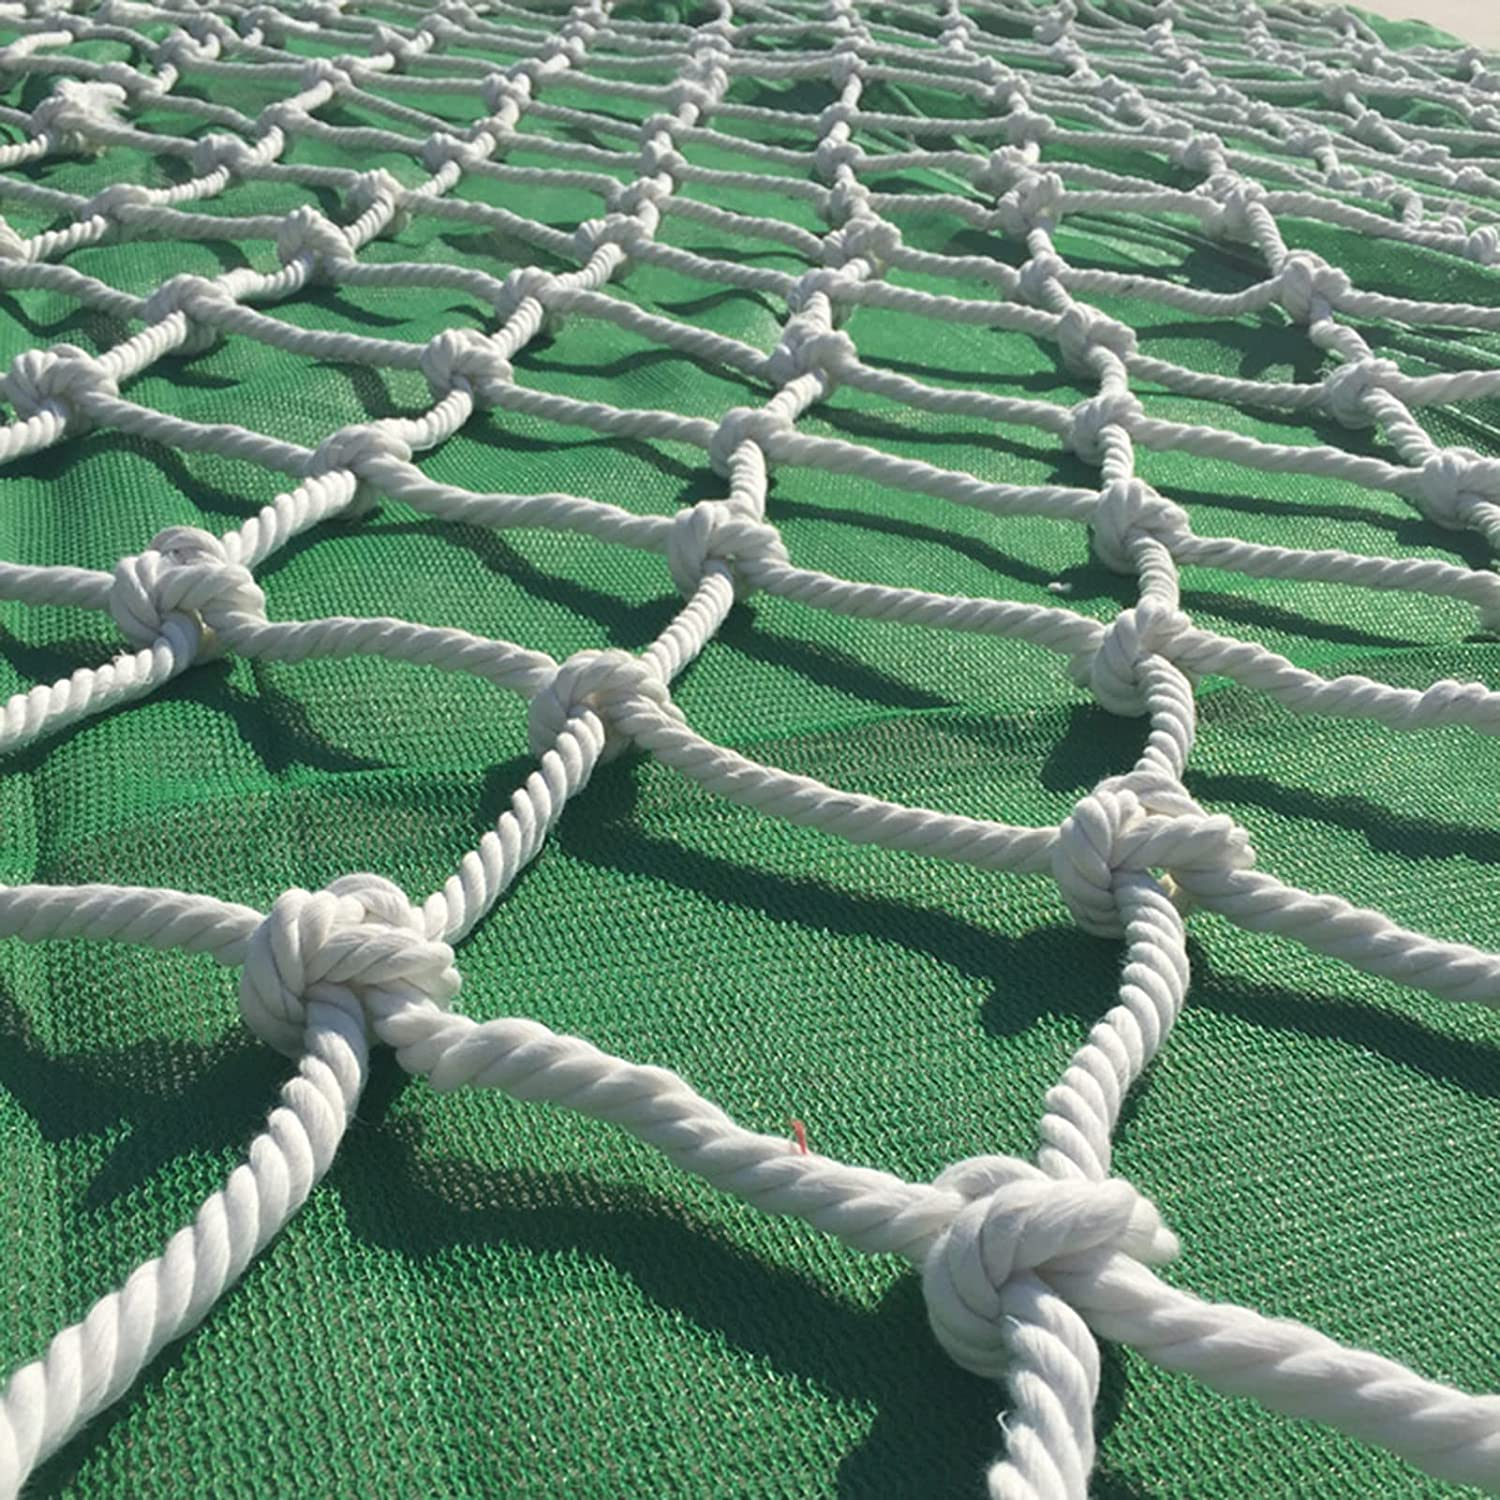 BNMY Rope Indefinitely Netting Climbing Net Cargo Deluxe Adults Climb Kids